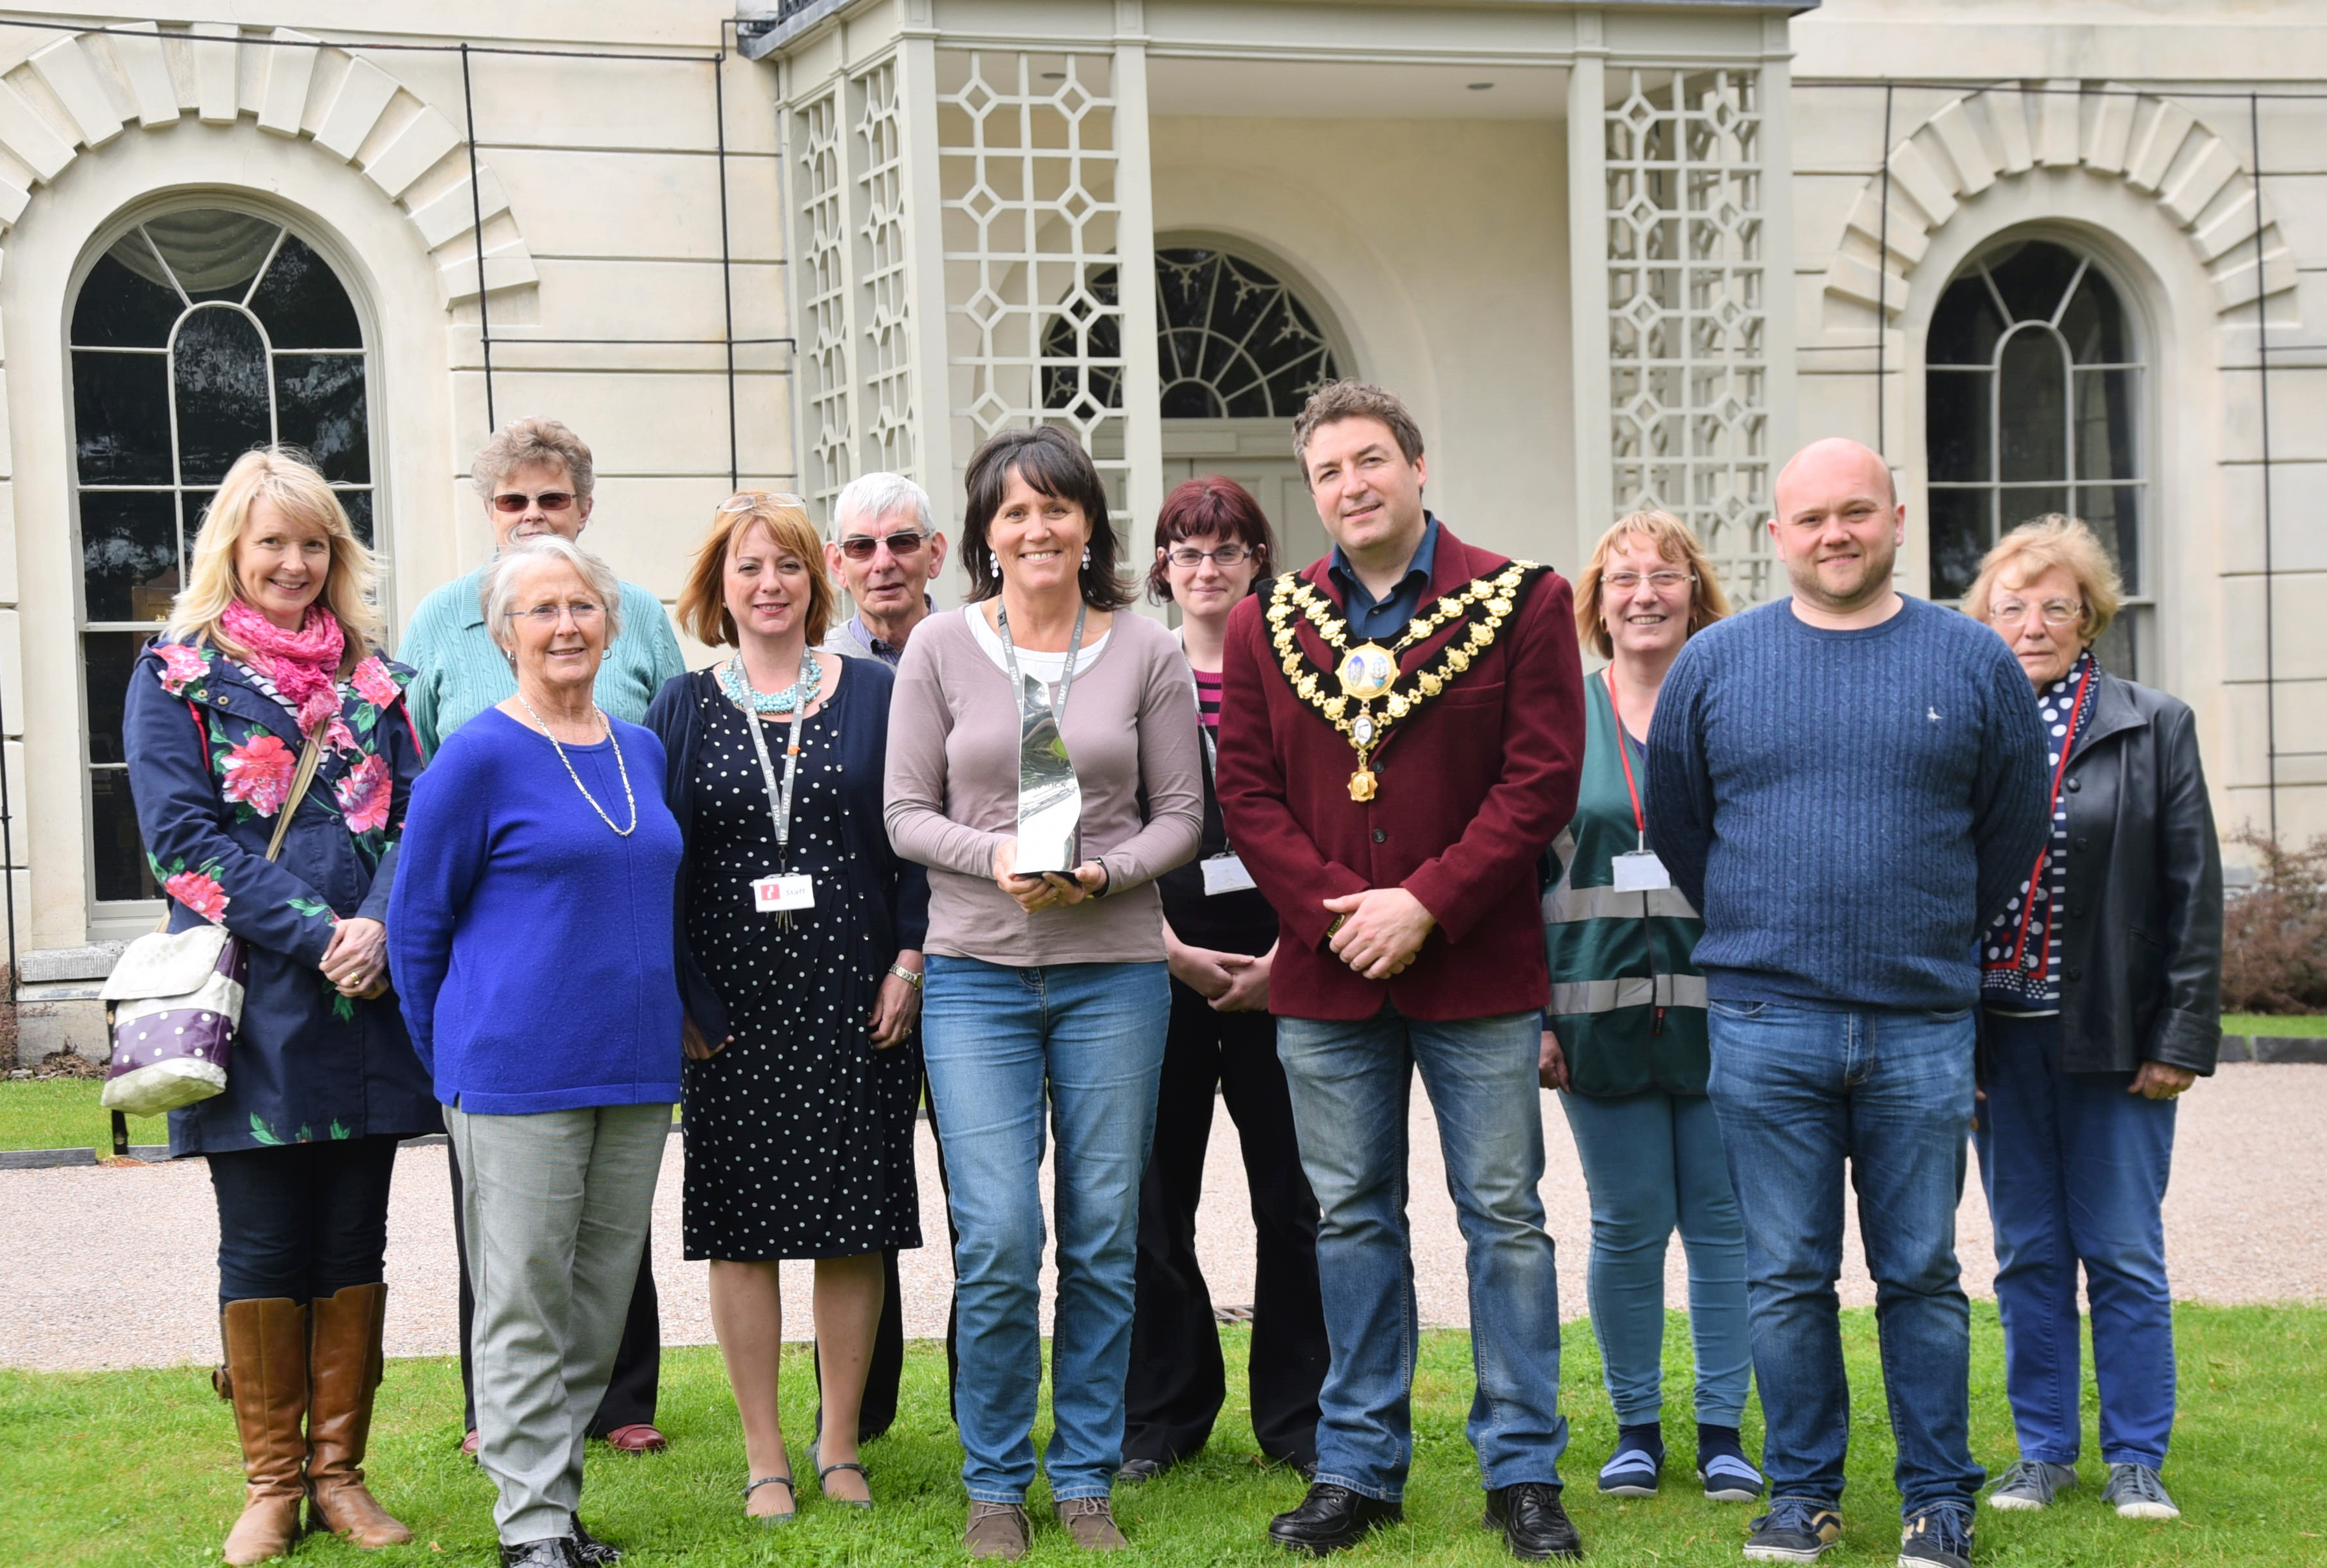 Castle facilities officer Sue Lewis with the RICS awards, trustee and town mayor Cllr Clive Davies, trustees Arwyn Reed and Non Lewis, castle admin officer Sue Edwards, receptionist Alyson Cole, castle volunteers Beryl Davies, Huw Davies, Meifis Griffiths, Margaret Waller and Muriel Davies.